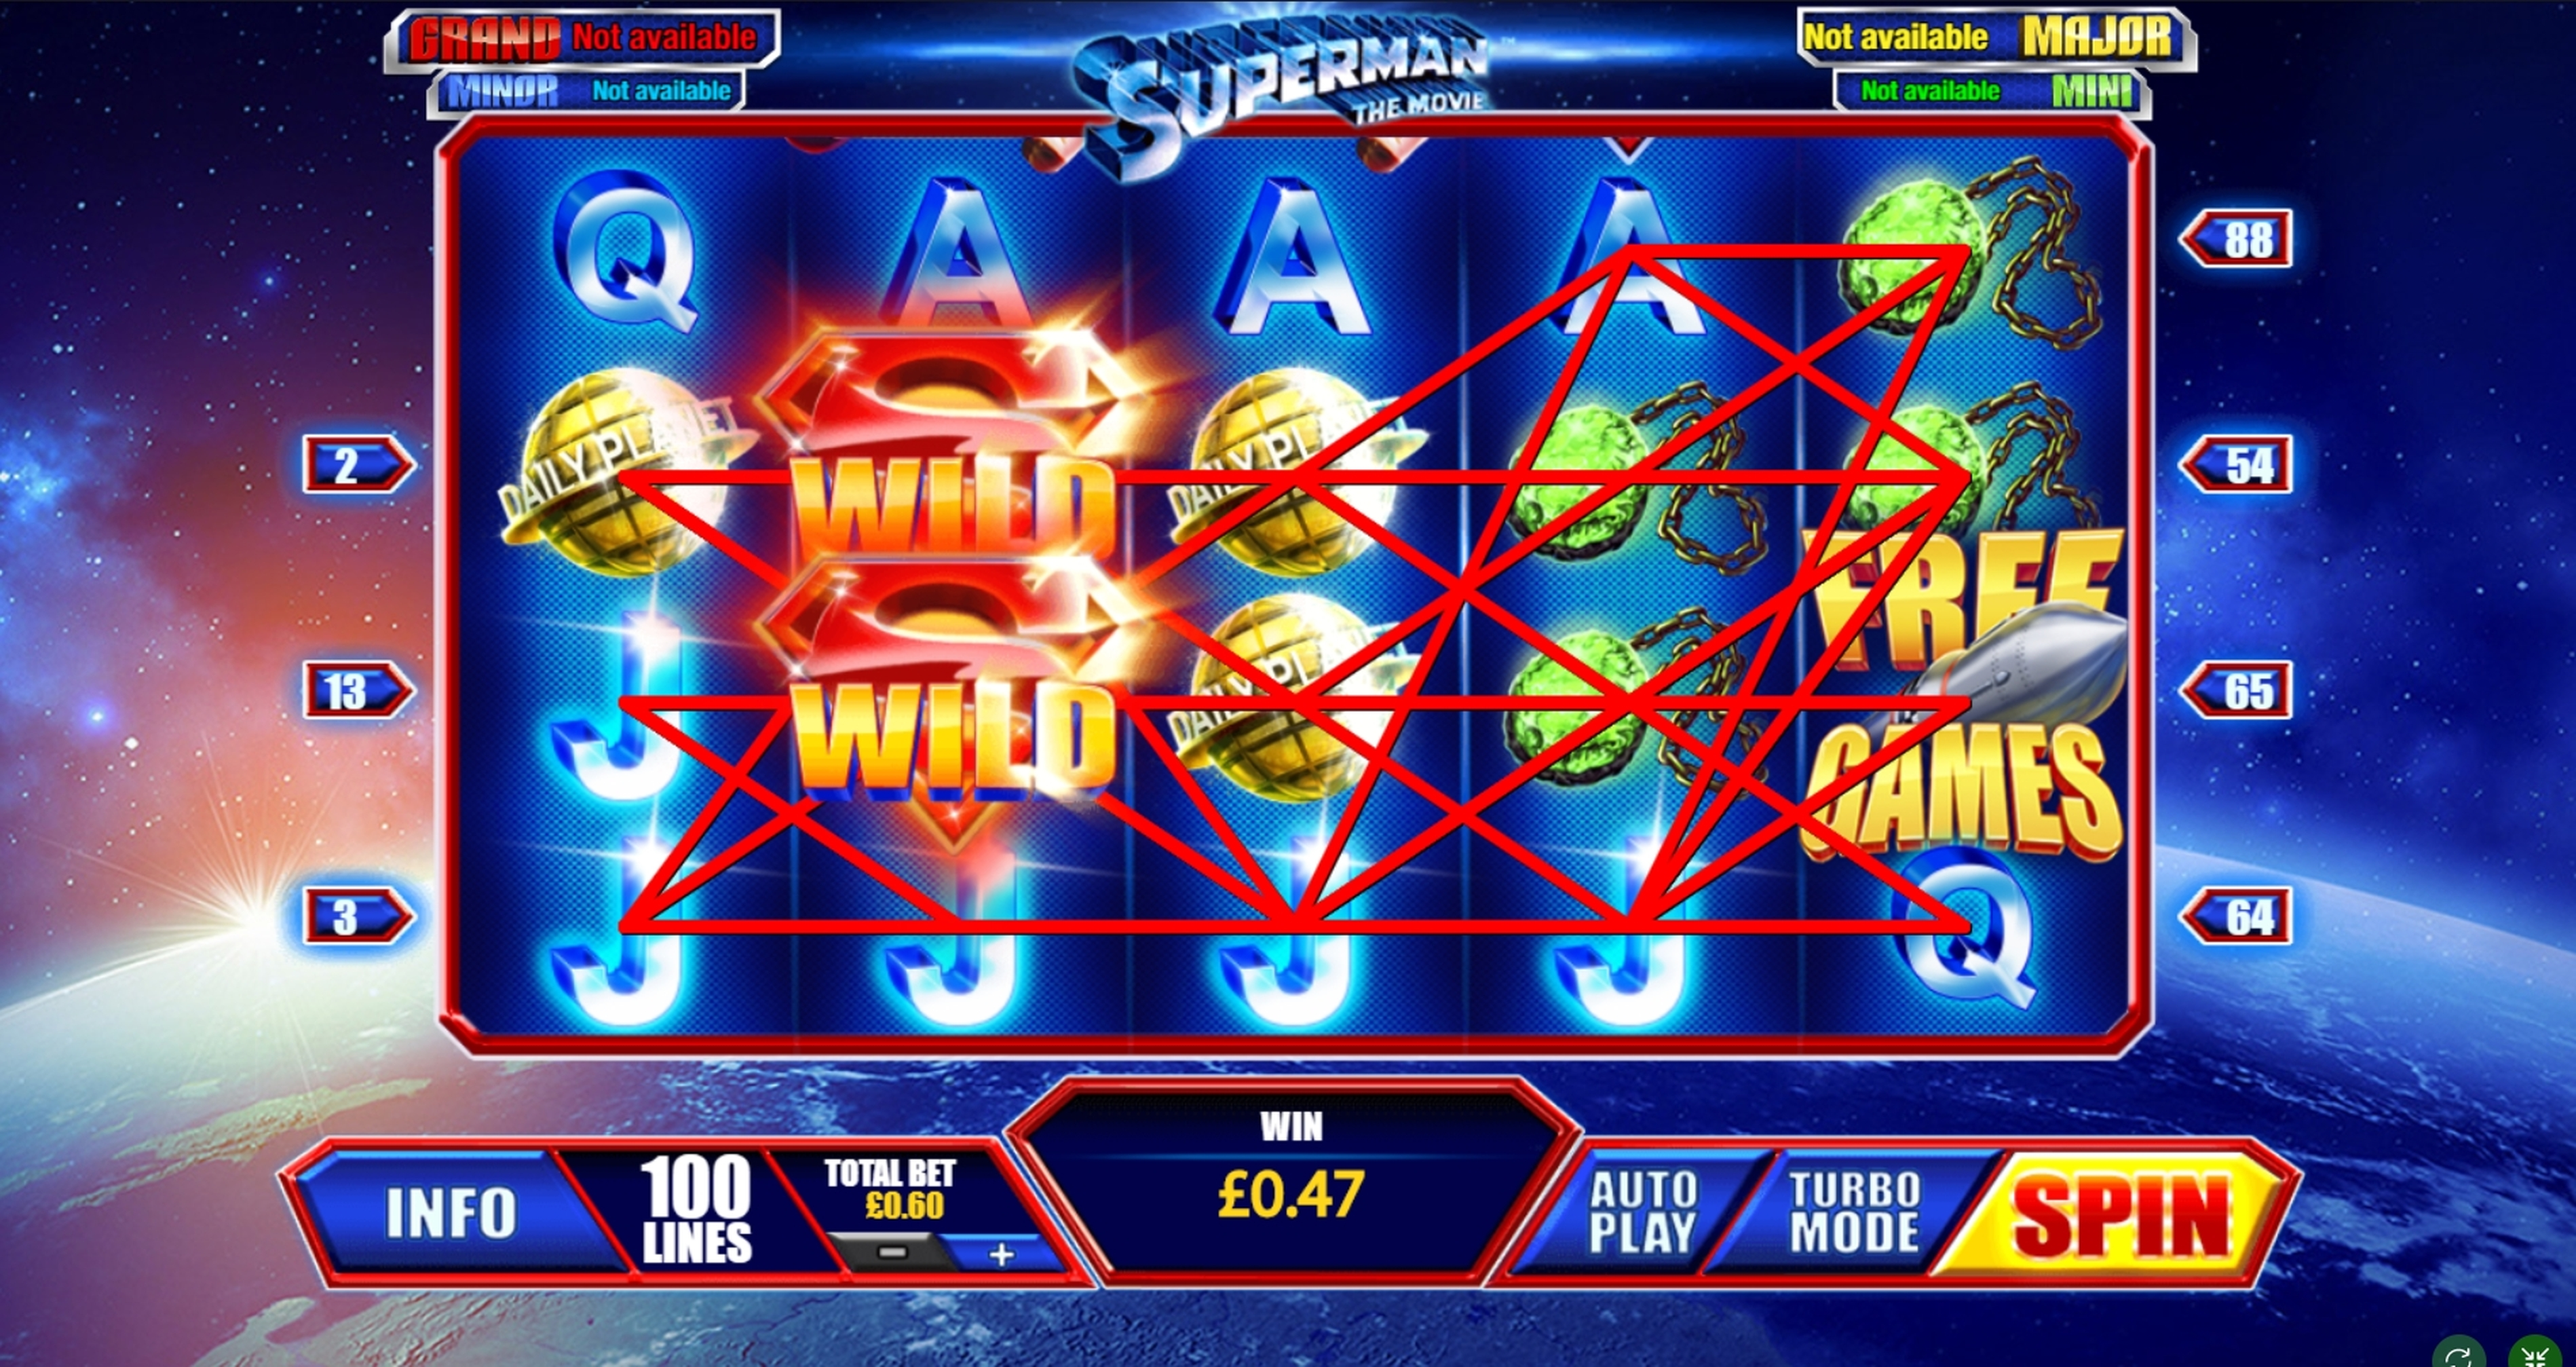 Win Money in Superman The Movie Free Slot Game by Playtech